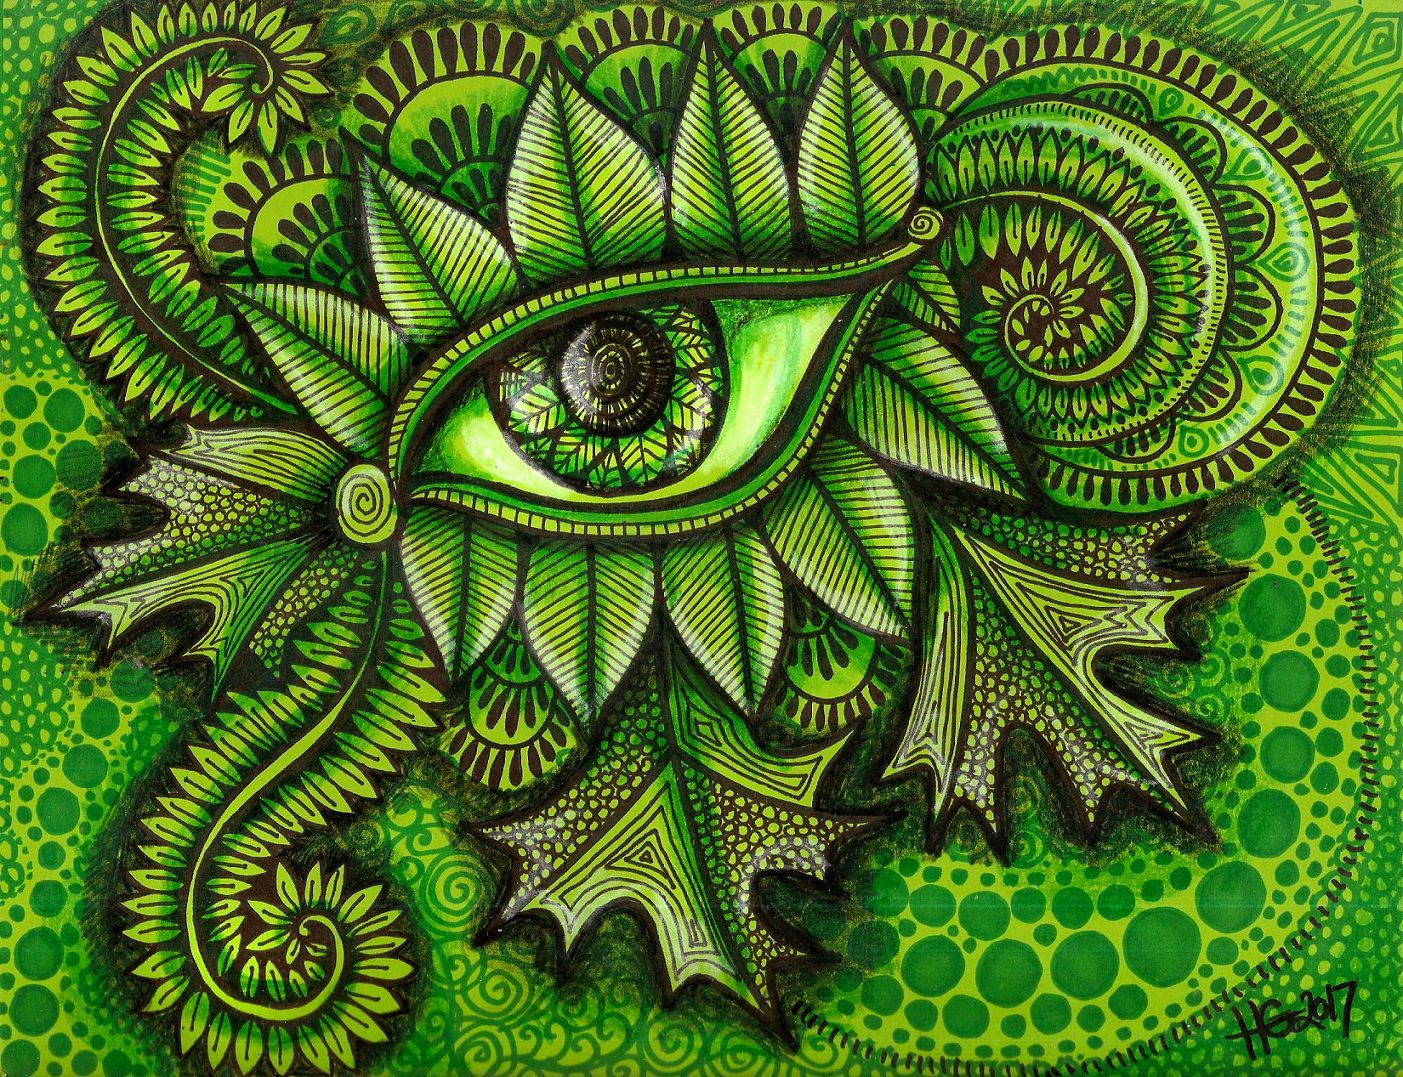 nature green eyeart zentangle eye hgcreativearts abstract drawing artwork art